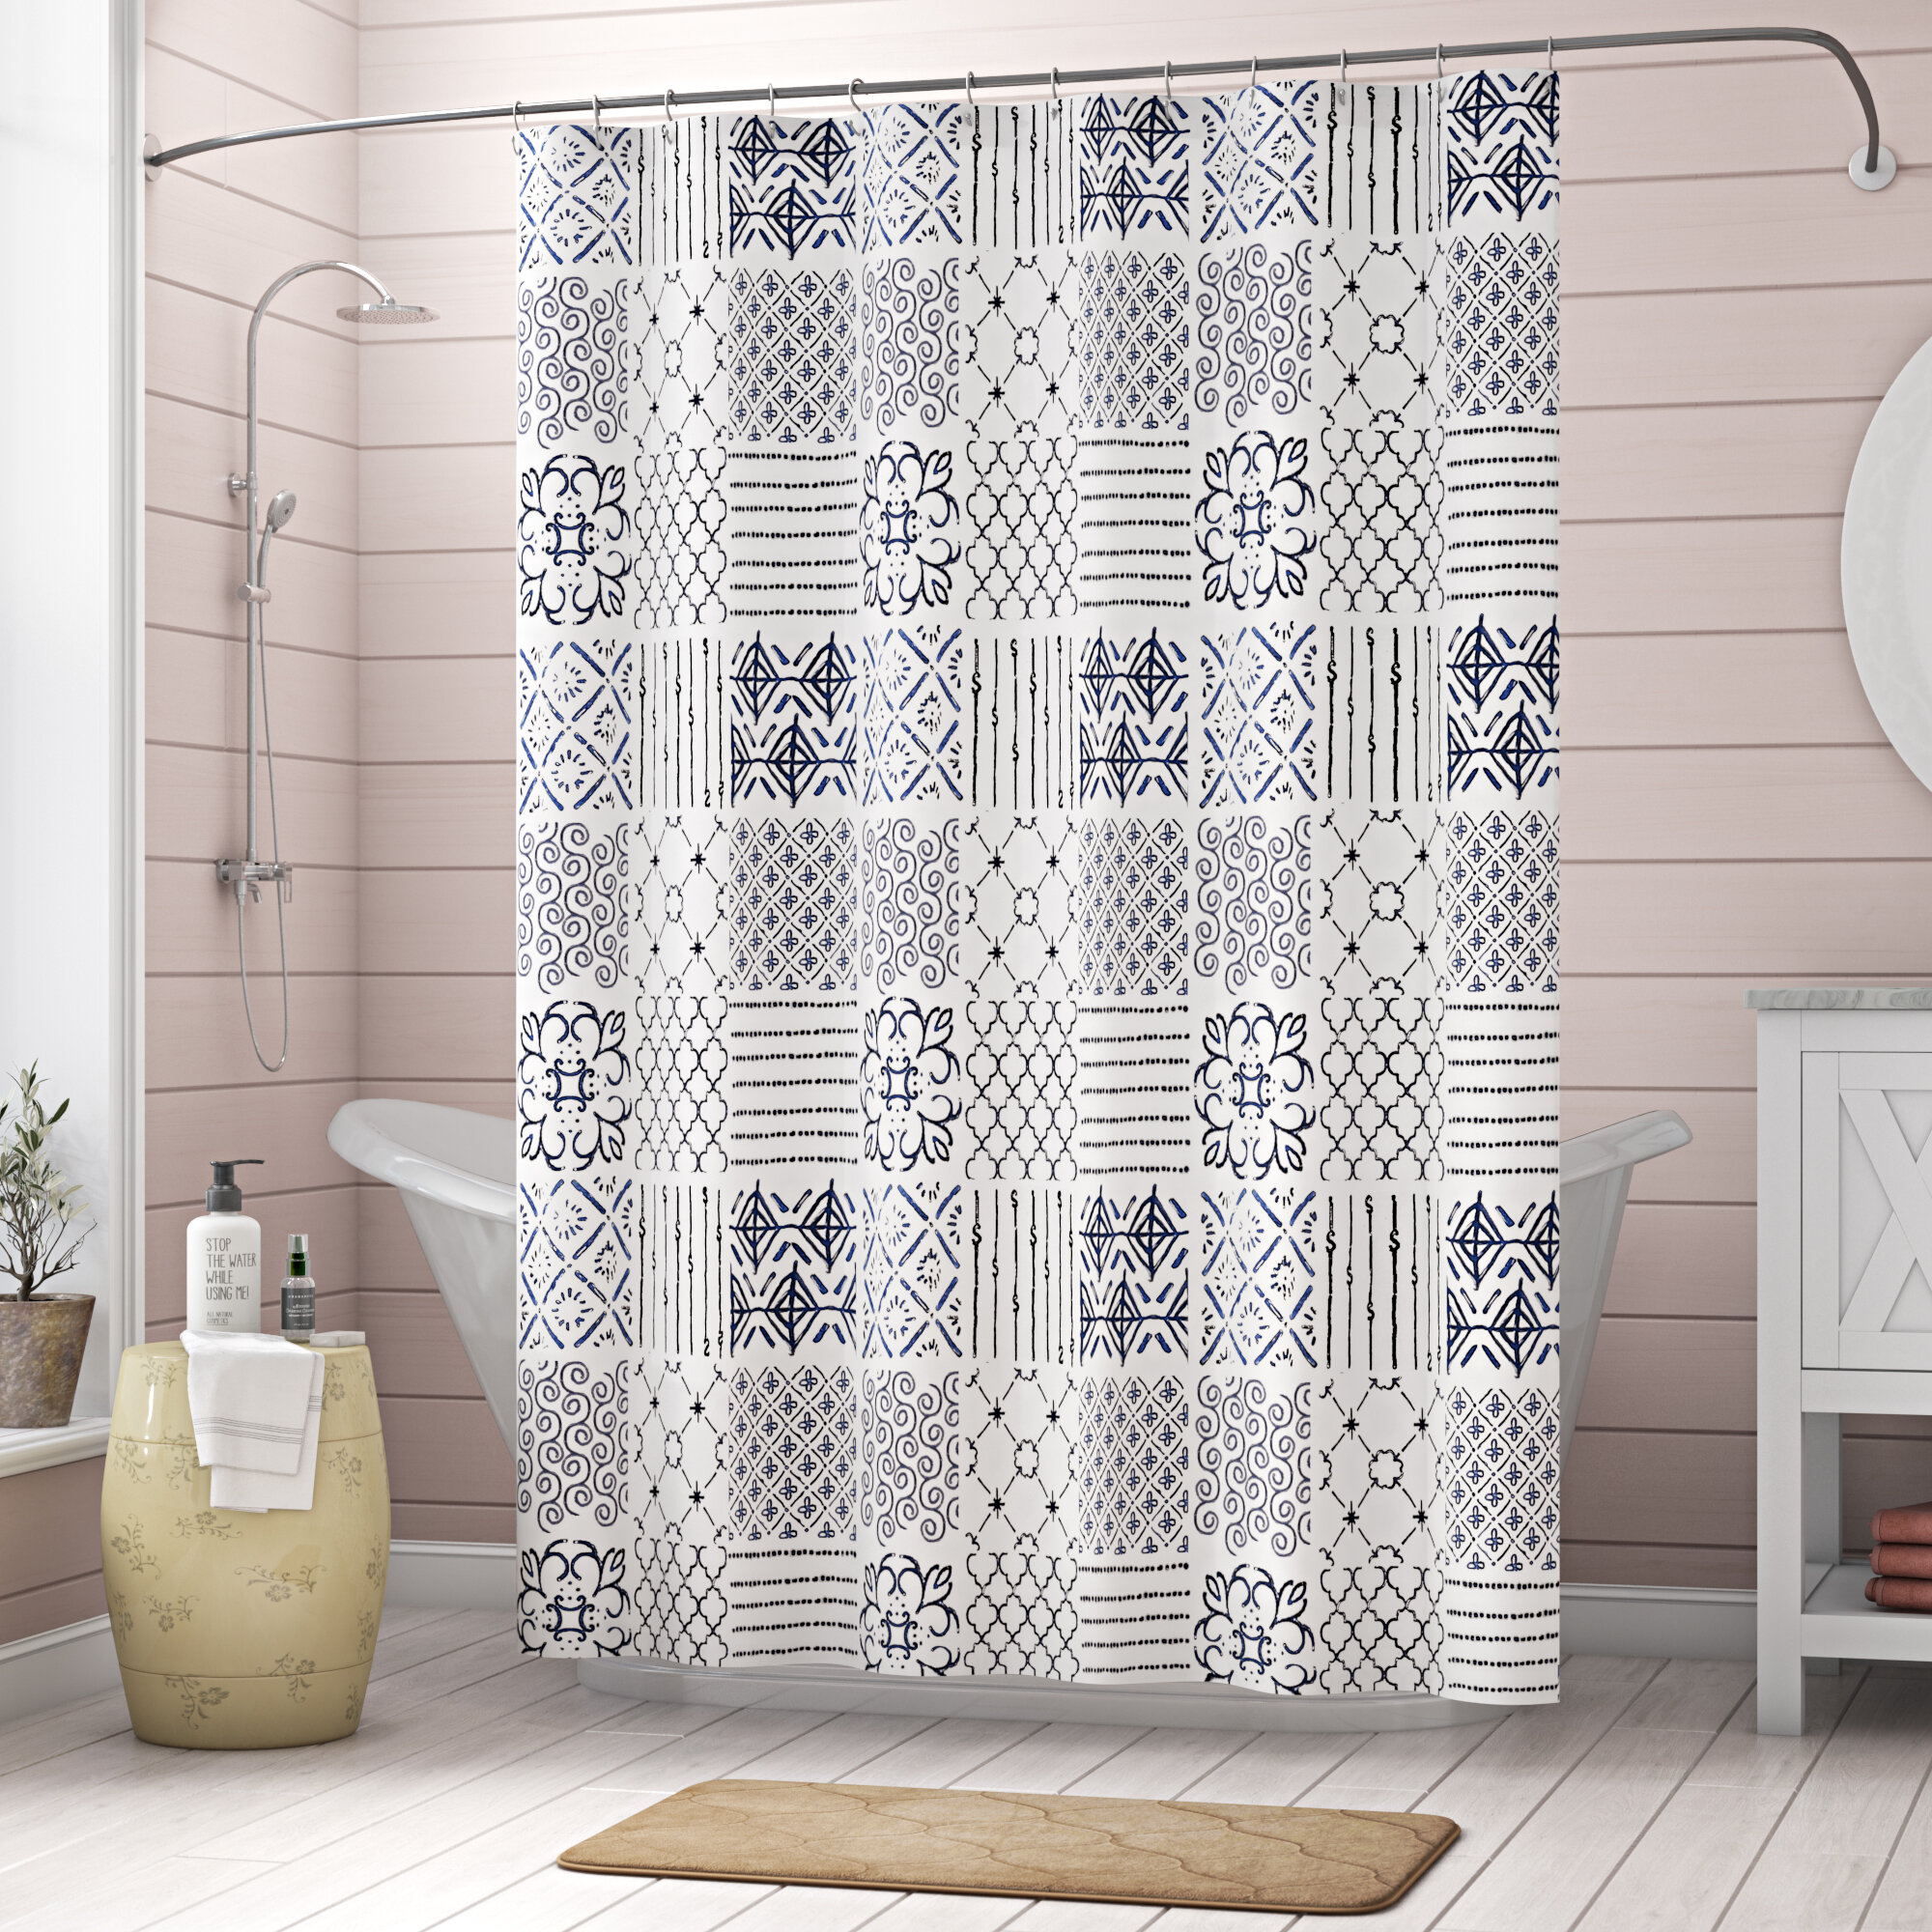 Laurel Foundry Modern Farmhouse Roseann Single Shower Curtain Reviews Wayfair Ca